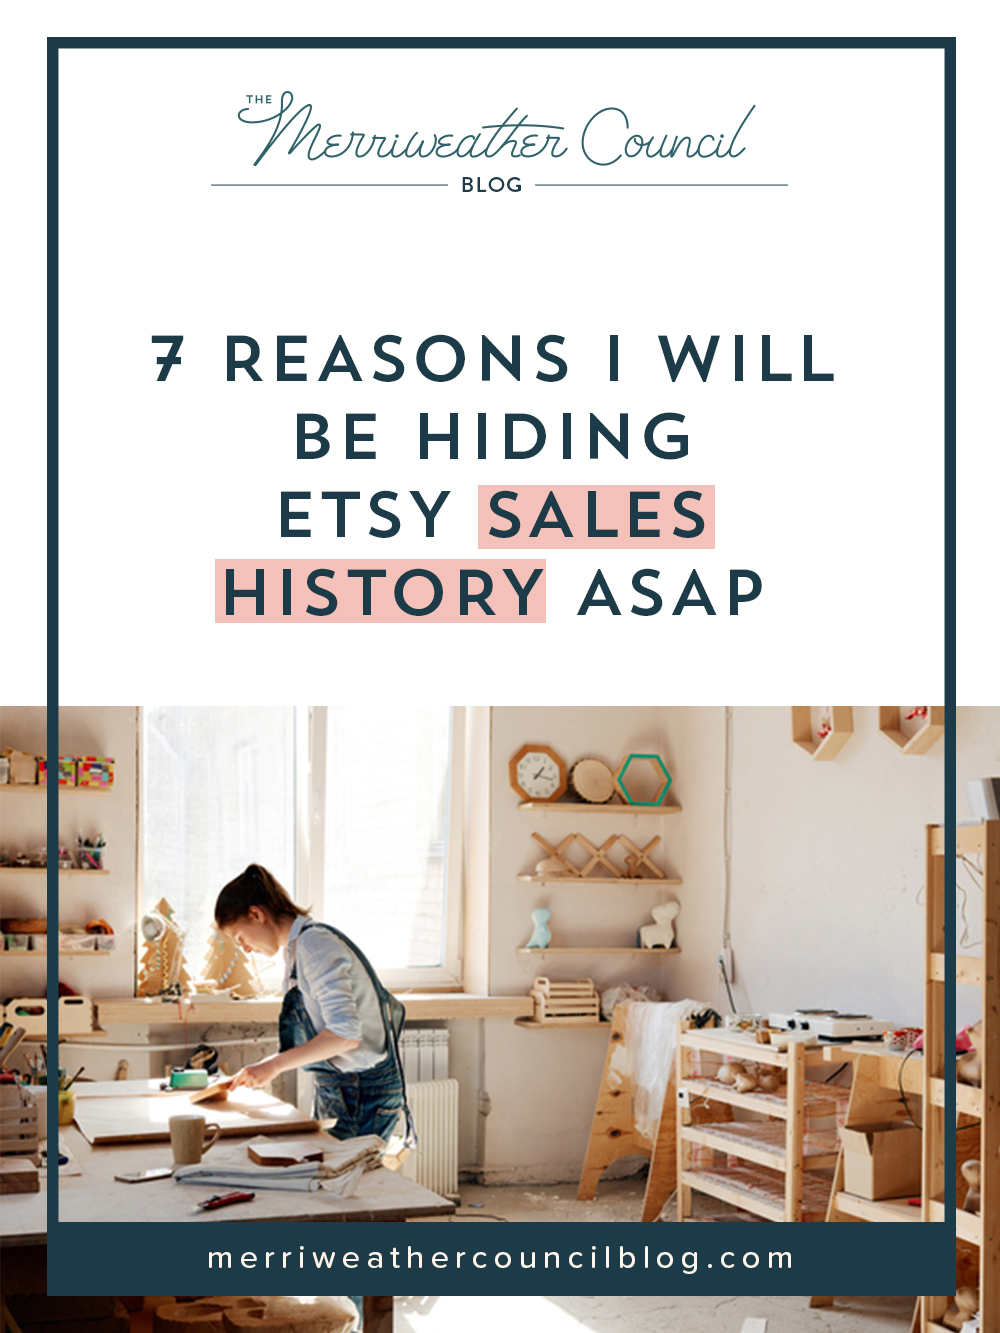 7 Reasons I Will be Hiding my Etsy Sales History ASAP | the merriweather council blog